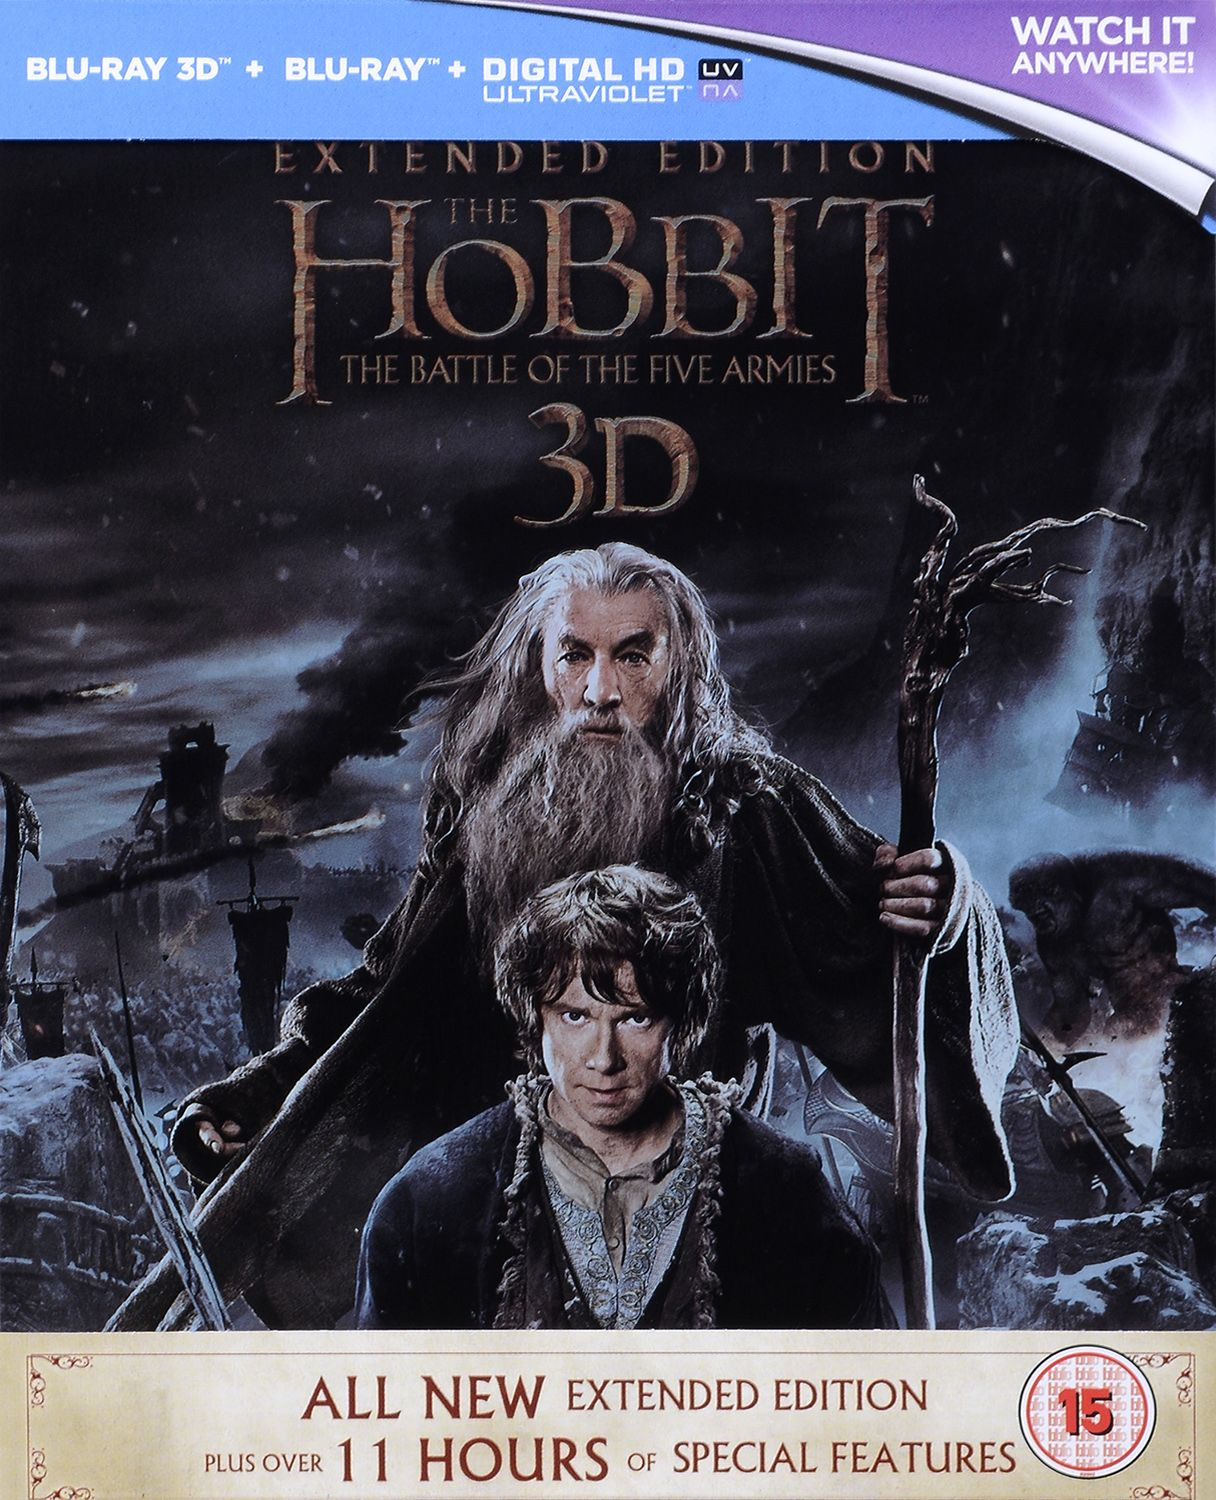 The Hobbit: The Battle Of The Five Armies - Steelbook Extended Edition 3D+2D (Blu-Ray) - 2